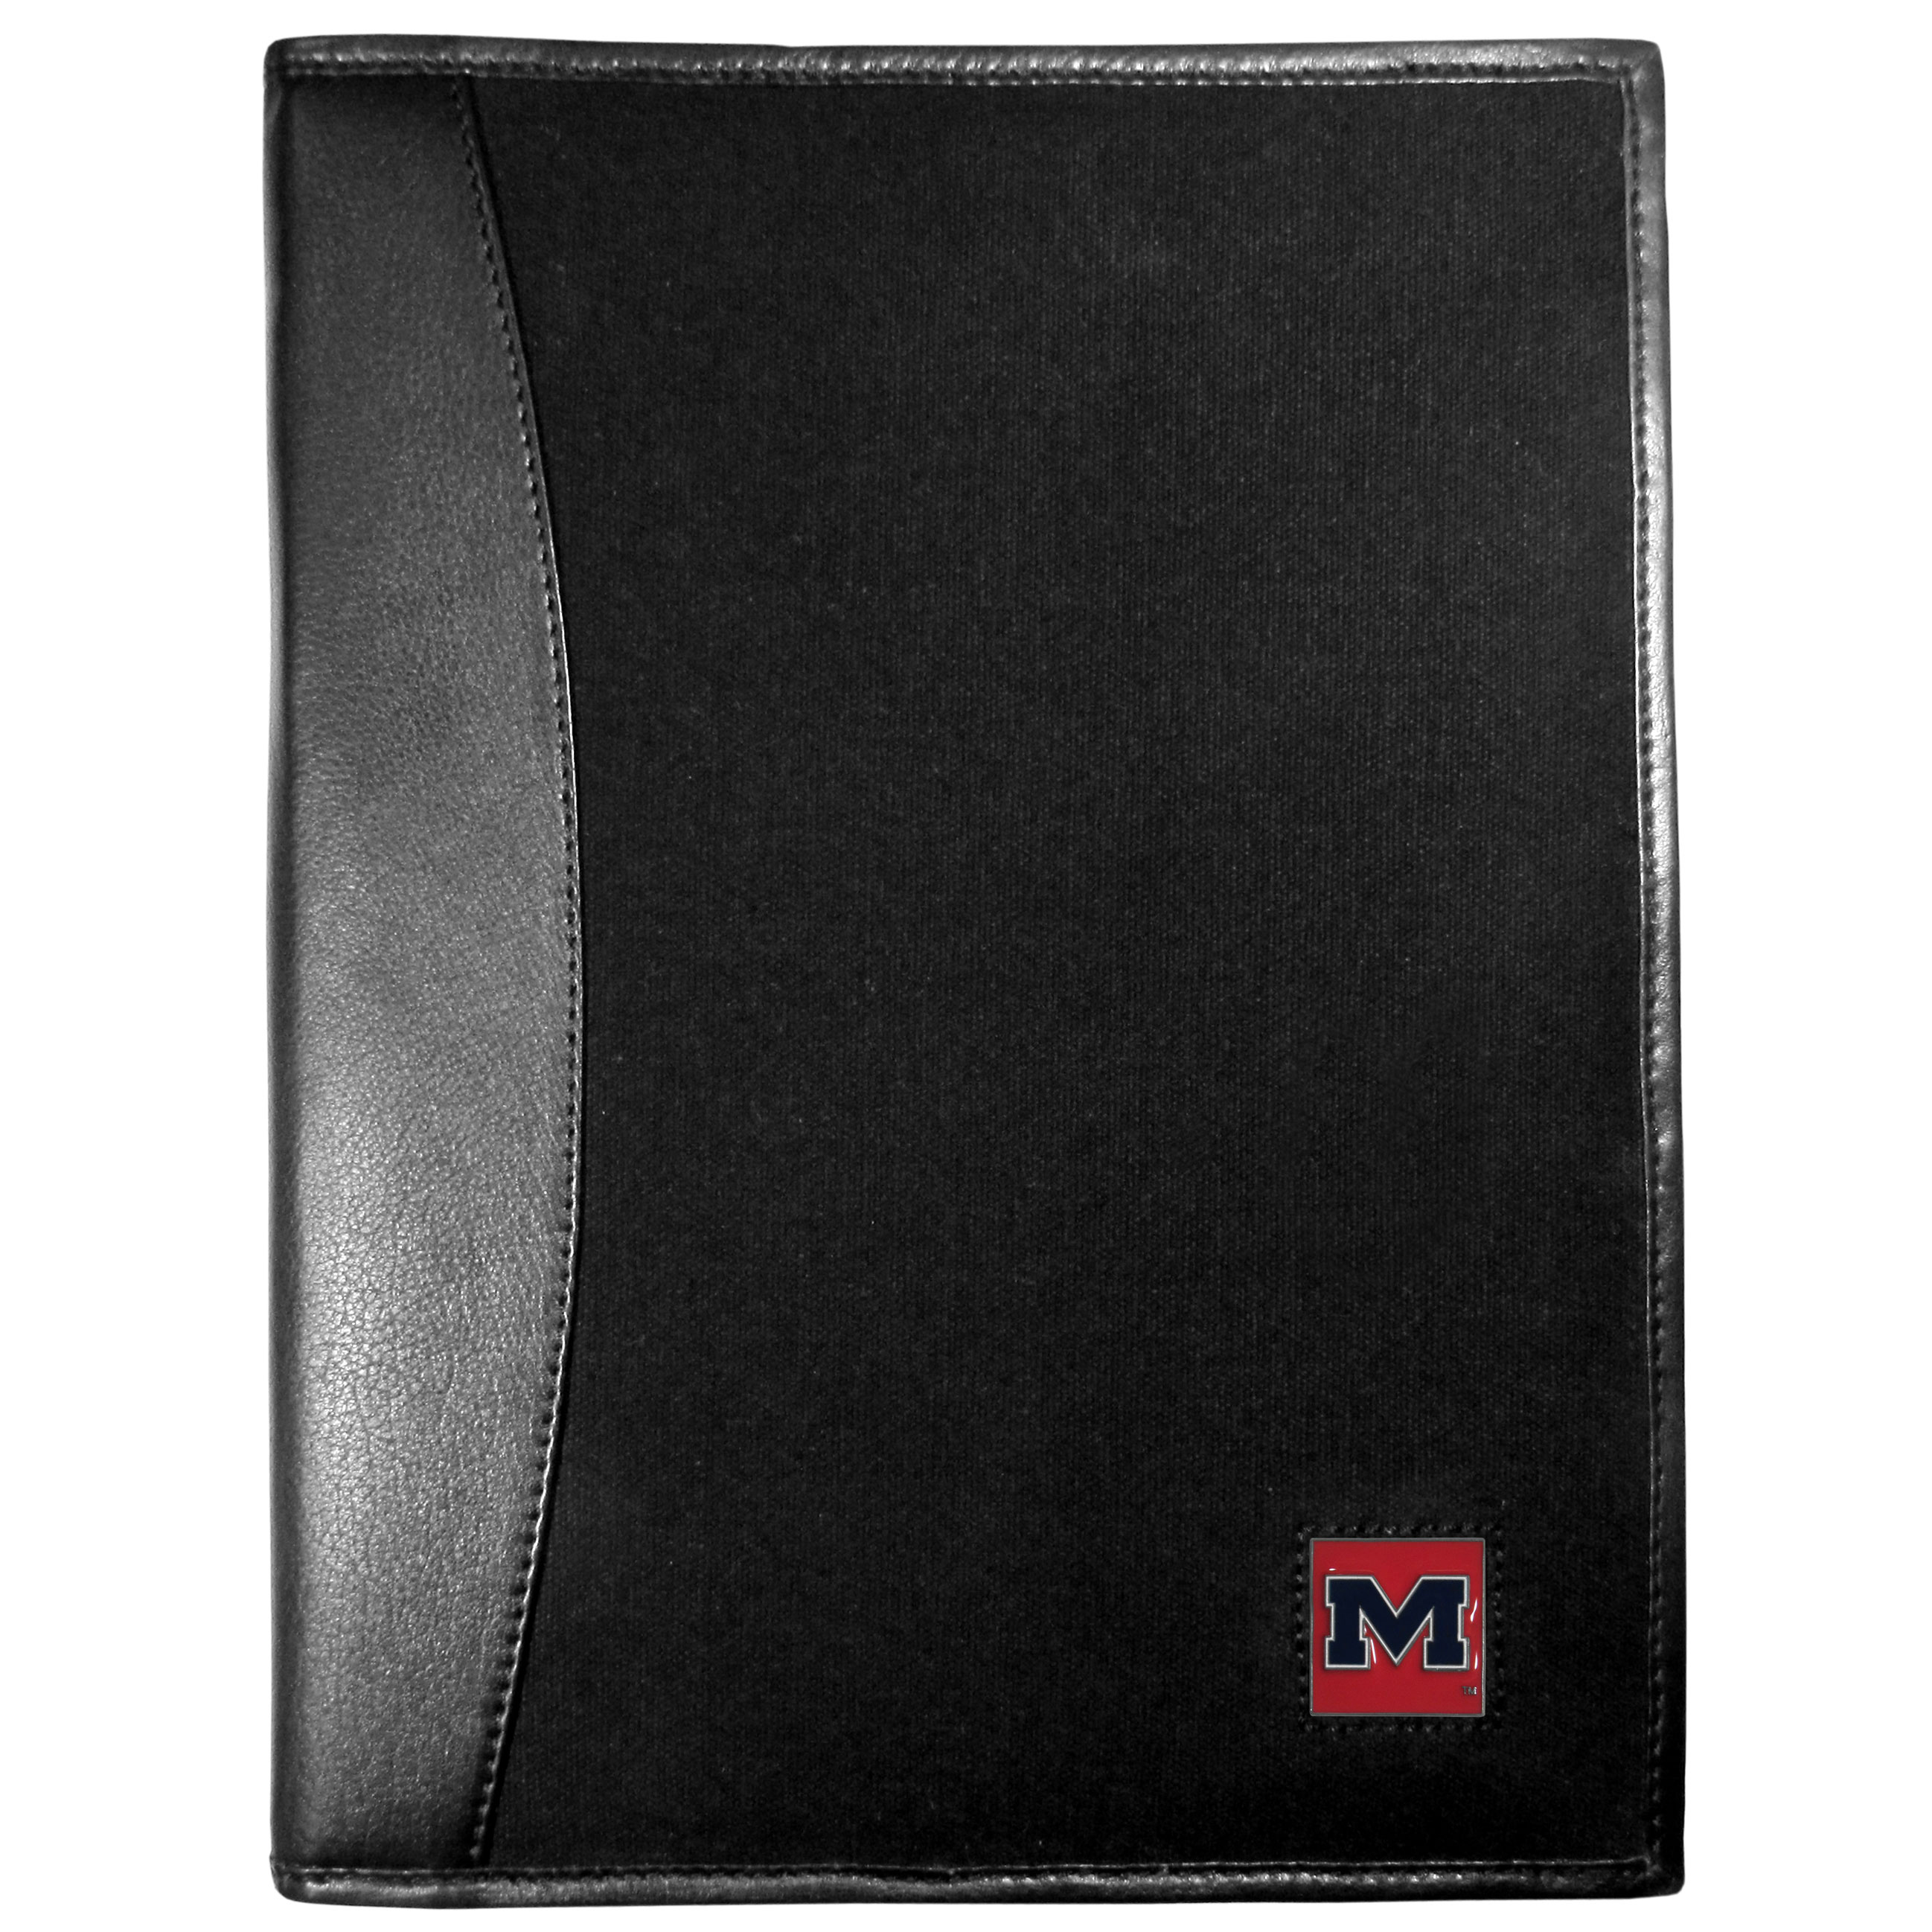 Mississippi Rebels Leather and Canvas Padfolio - Our leather and canvas padfolio perfectly blends form and function. The attractive portfolio is bound in fine grain leather with an attractive canvas finish and the interior is a soft nylon. This high quality business accessory also features a fully cast metal Mississippi Rebels emblem that is subtly set in the corner of the organizer. It is packed with features like 6 card slots for badges, business cards, hotel keys or credit cards and ID with a large pocket for loose papers and a writing tablet slot making it a must-have for the professional on the go.